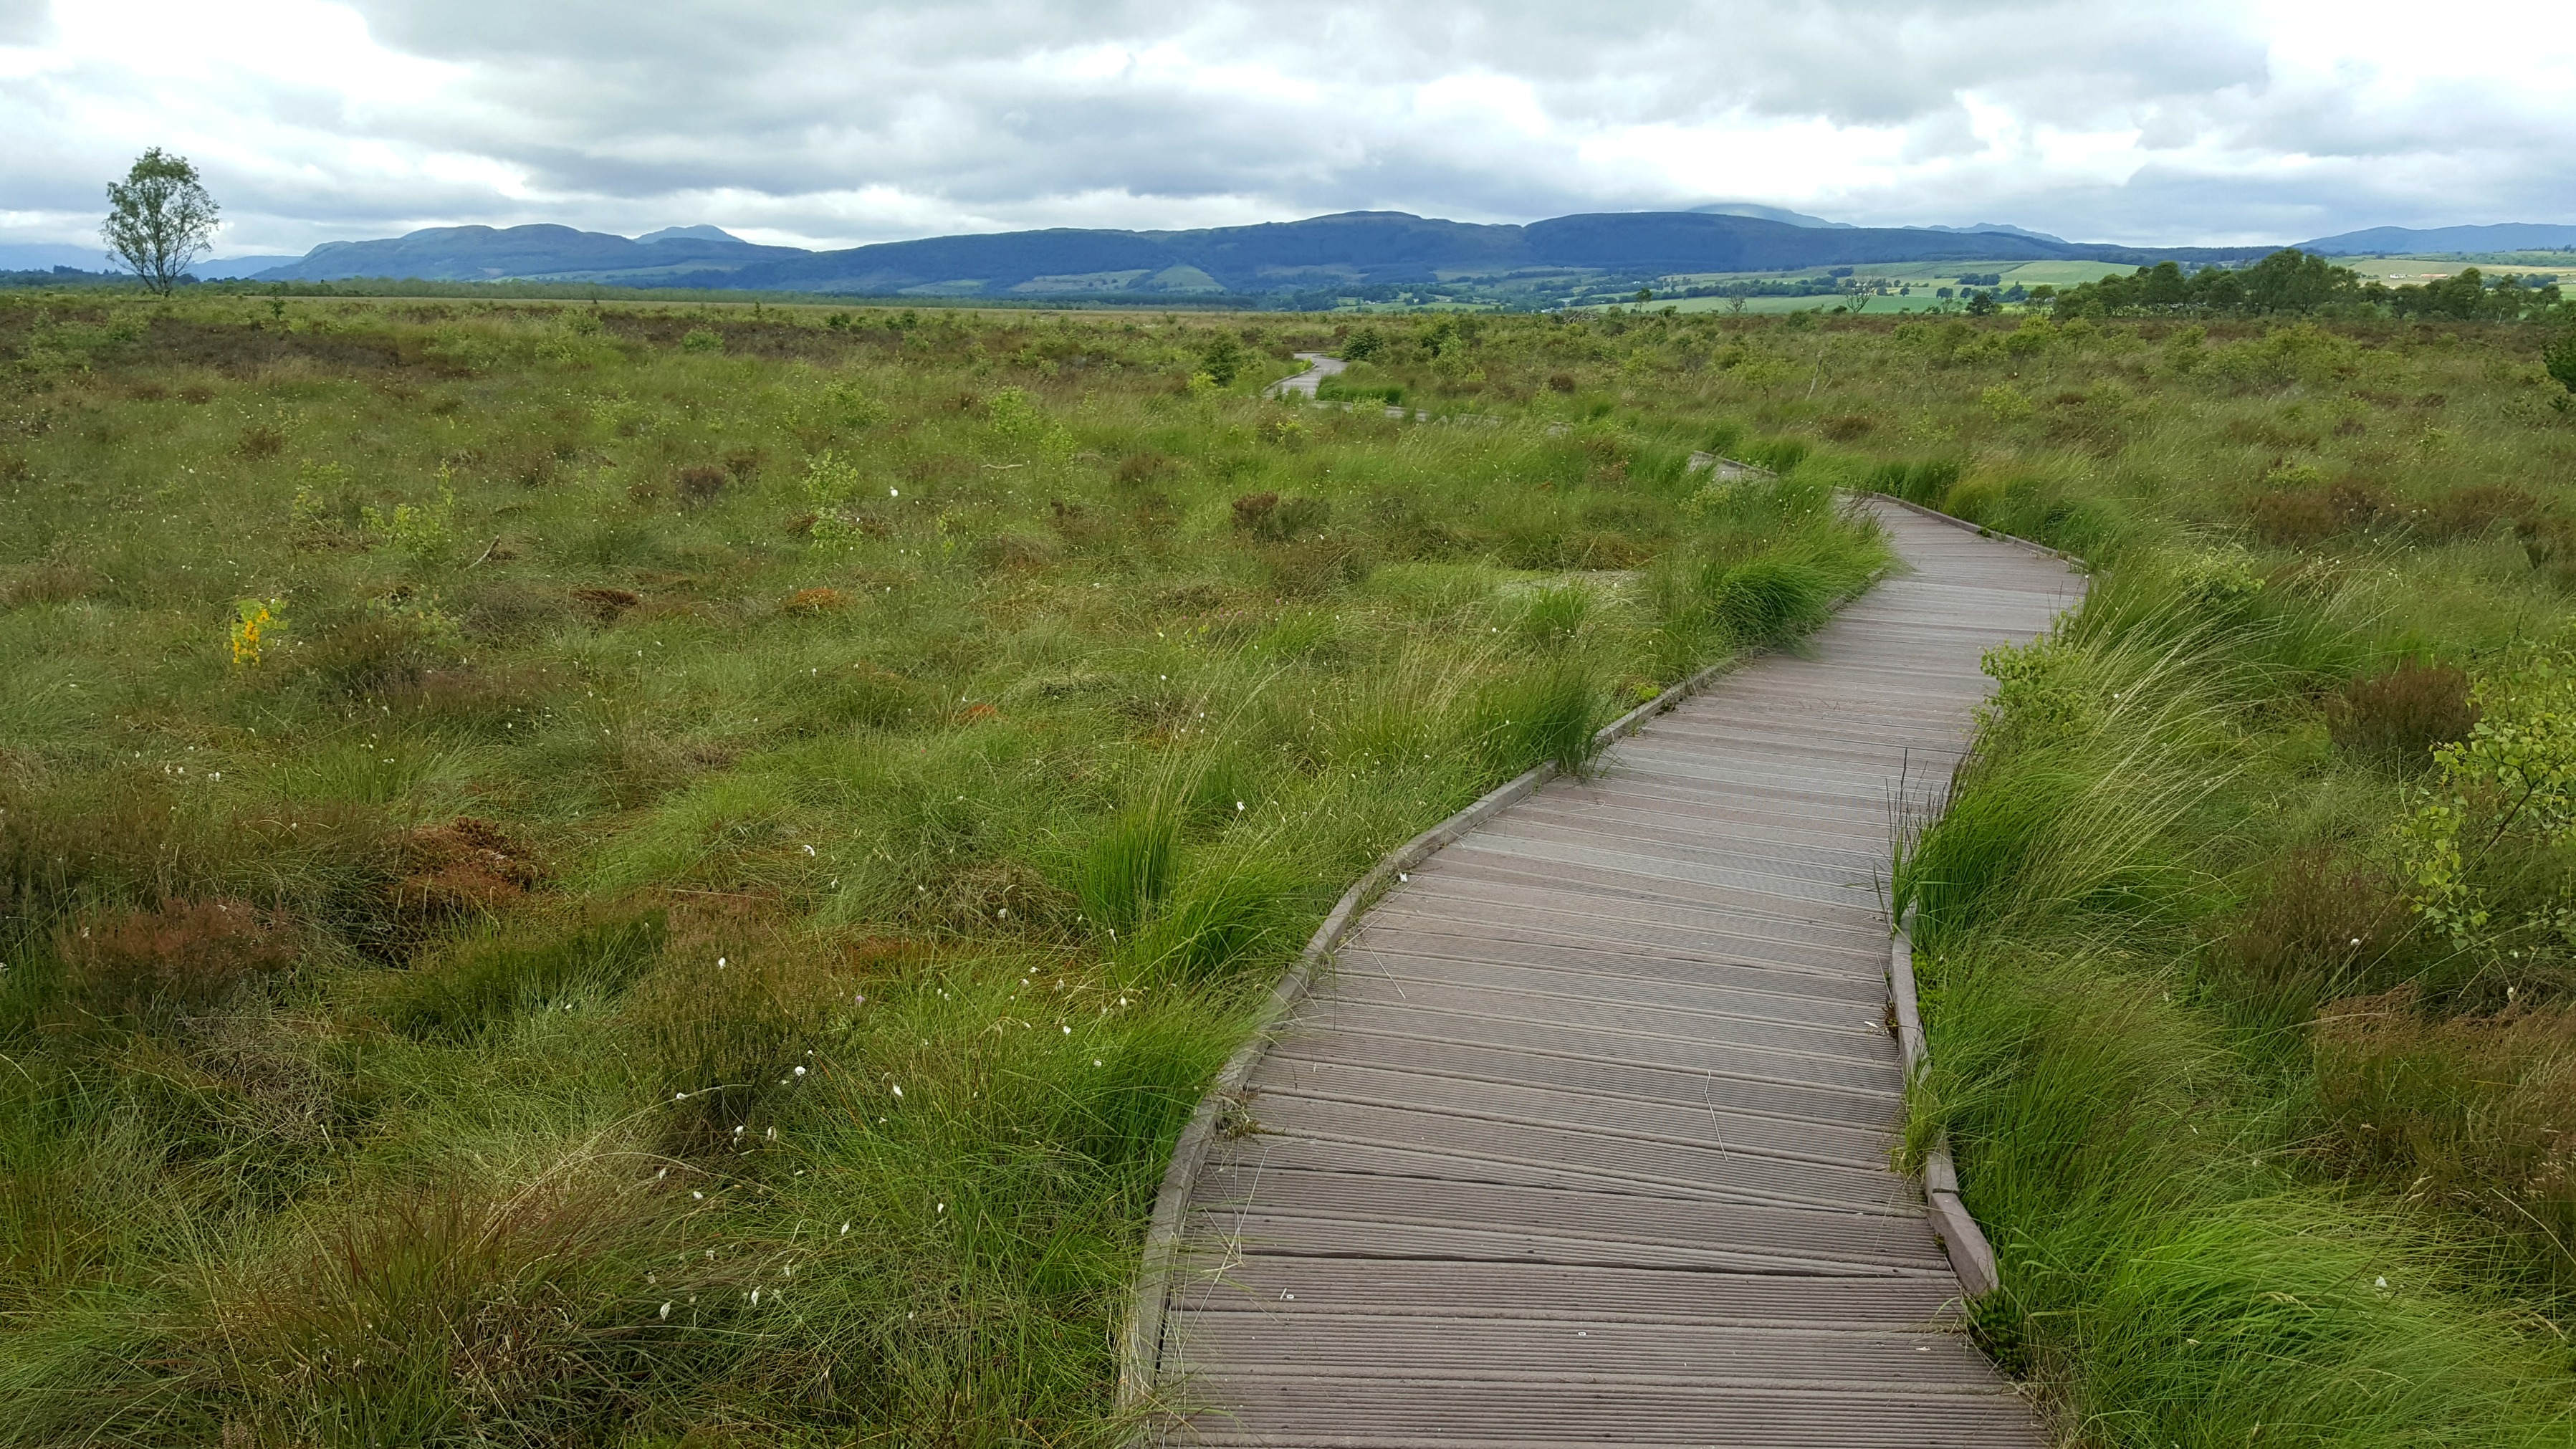 Flanders Moss National Nature Reserve boardwalk